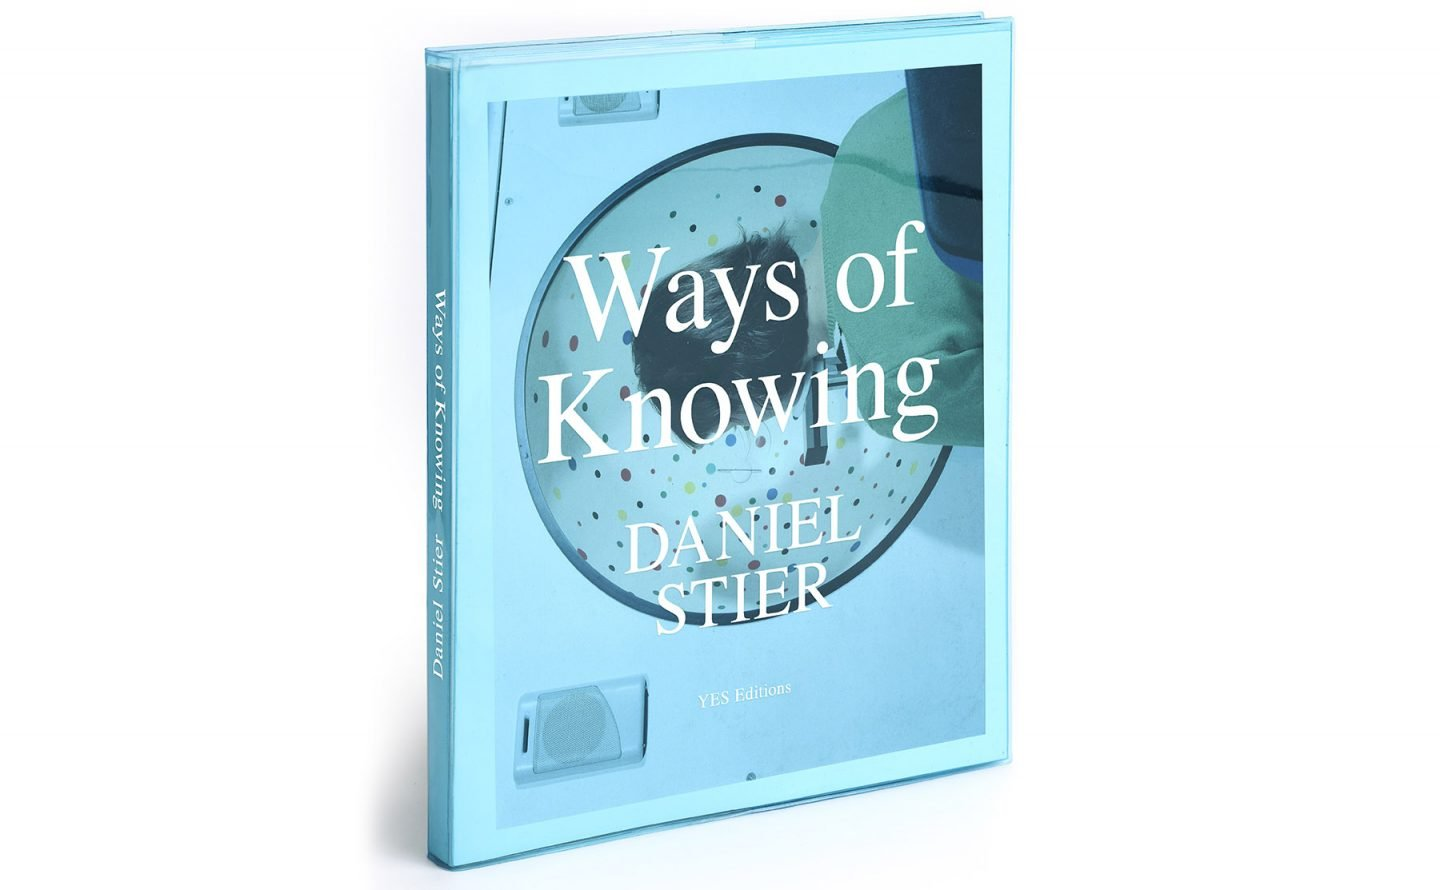 iGNANT-Print-Daniel-Stier-Ways-Of-Knowing-Book-002